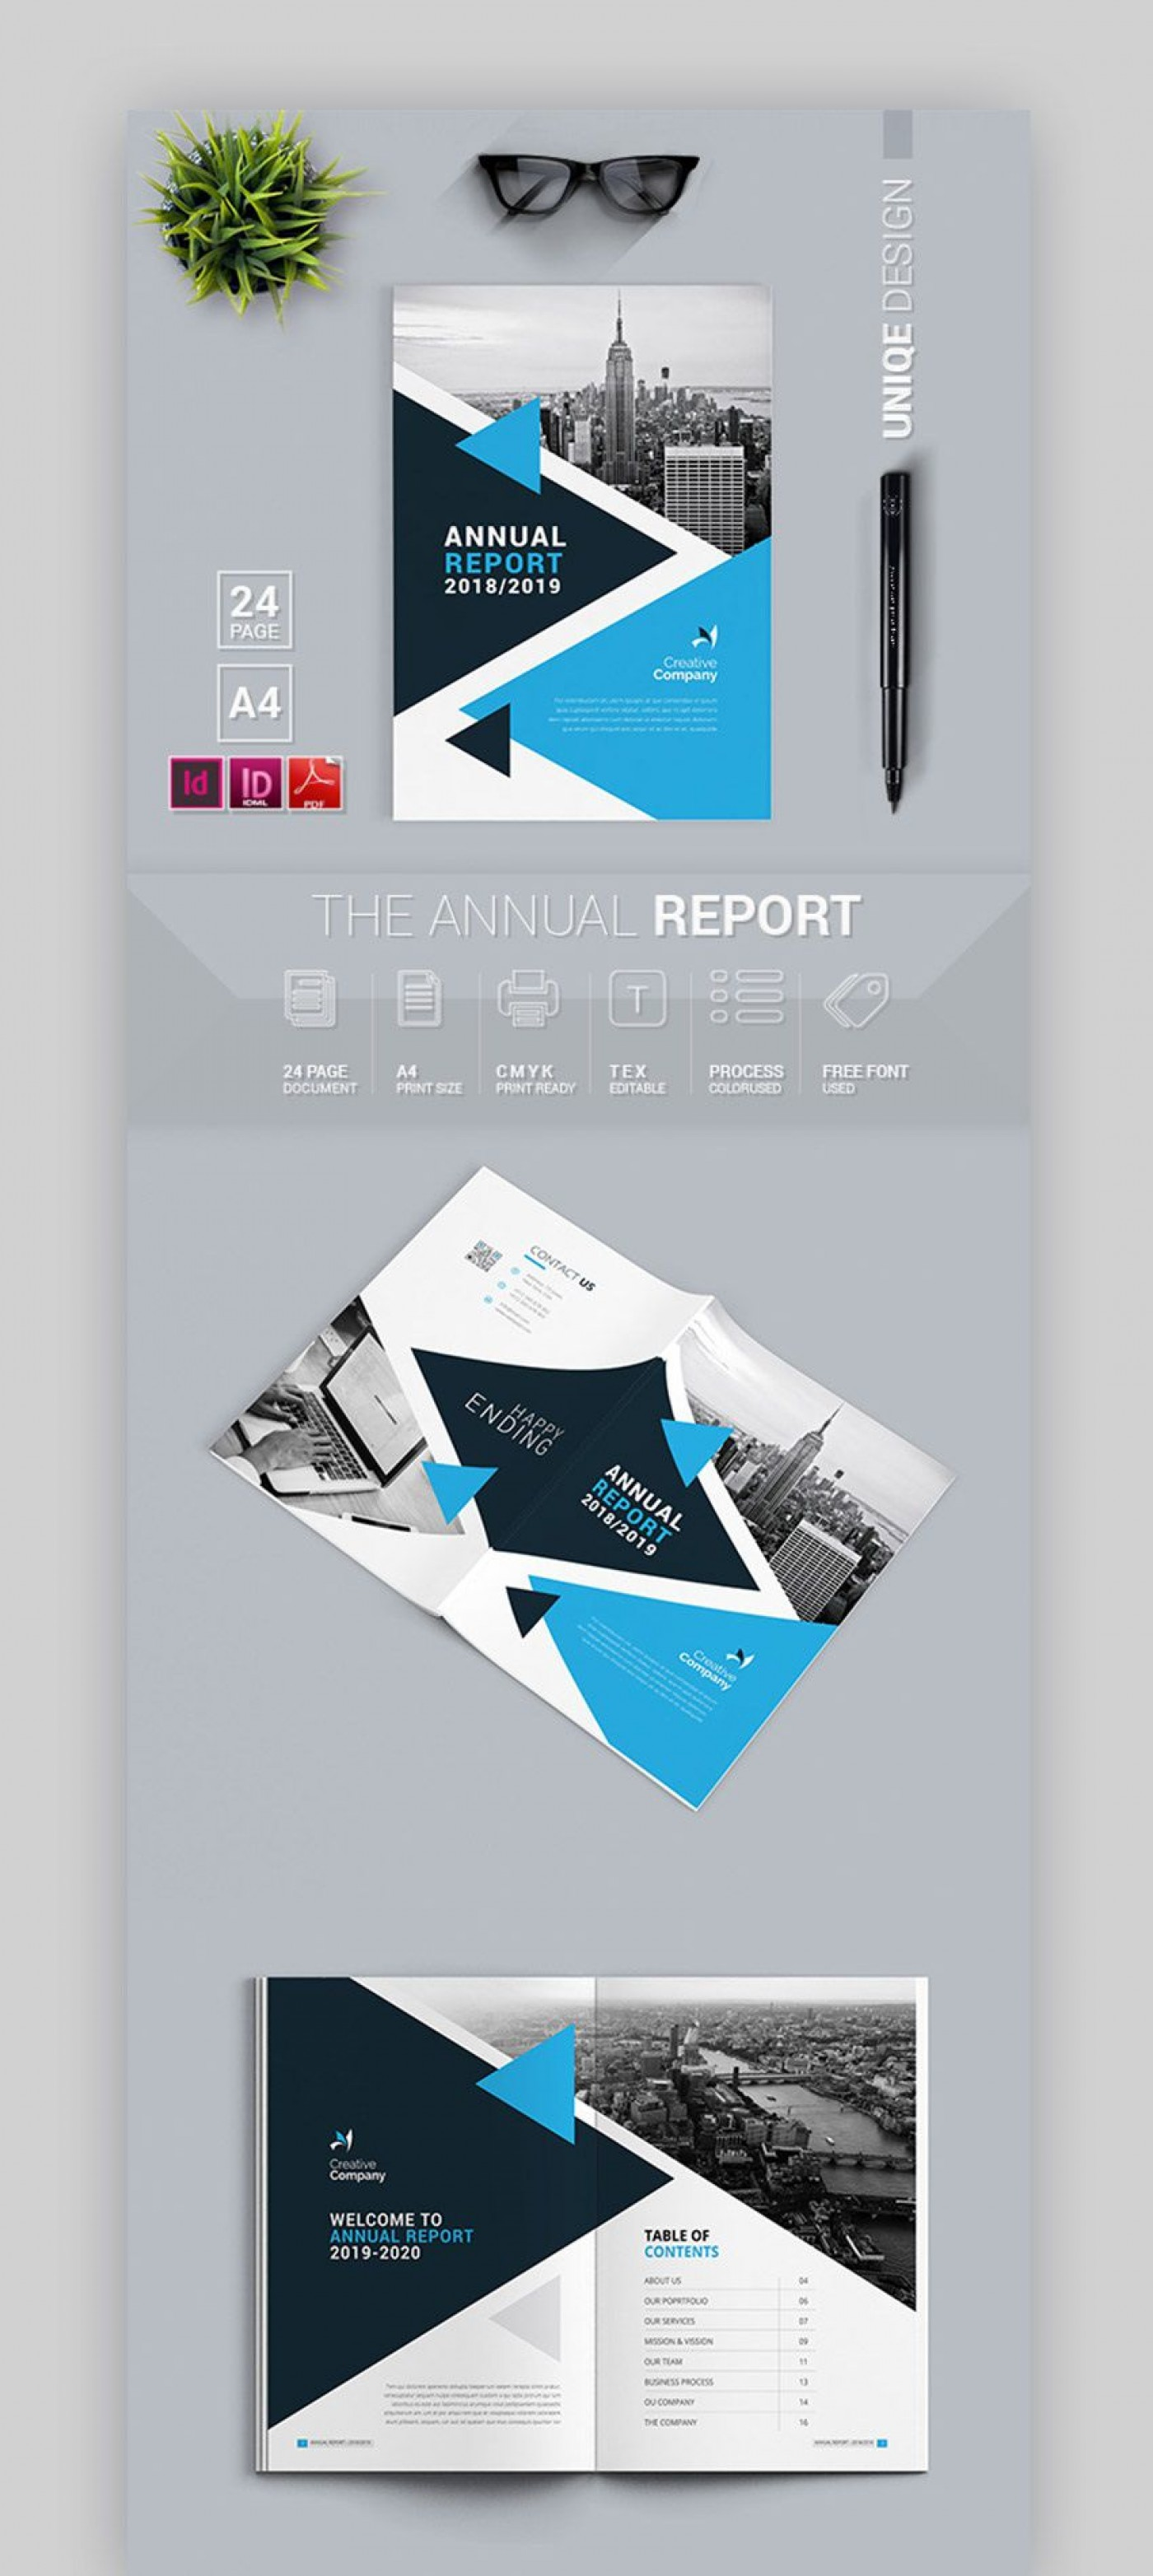 001 Fascinating Annual Report Design Template Indesign  Free Download1400